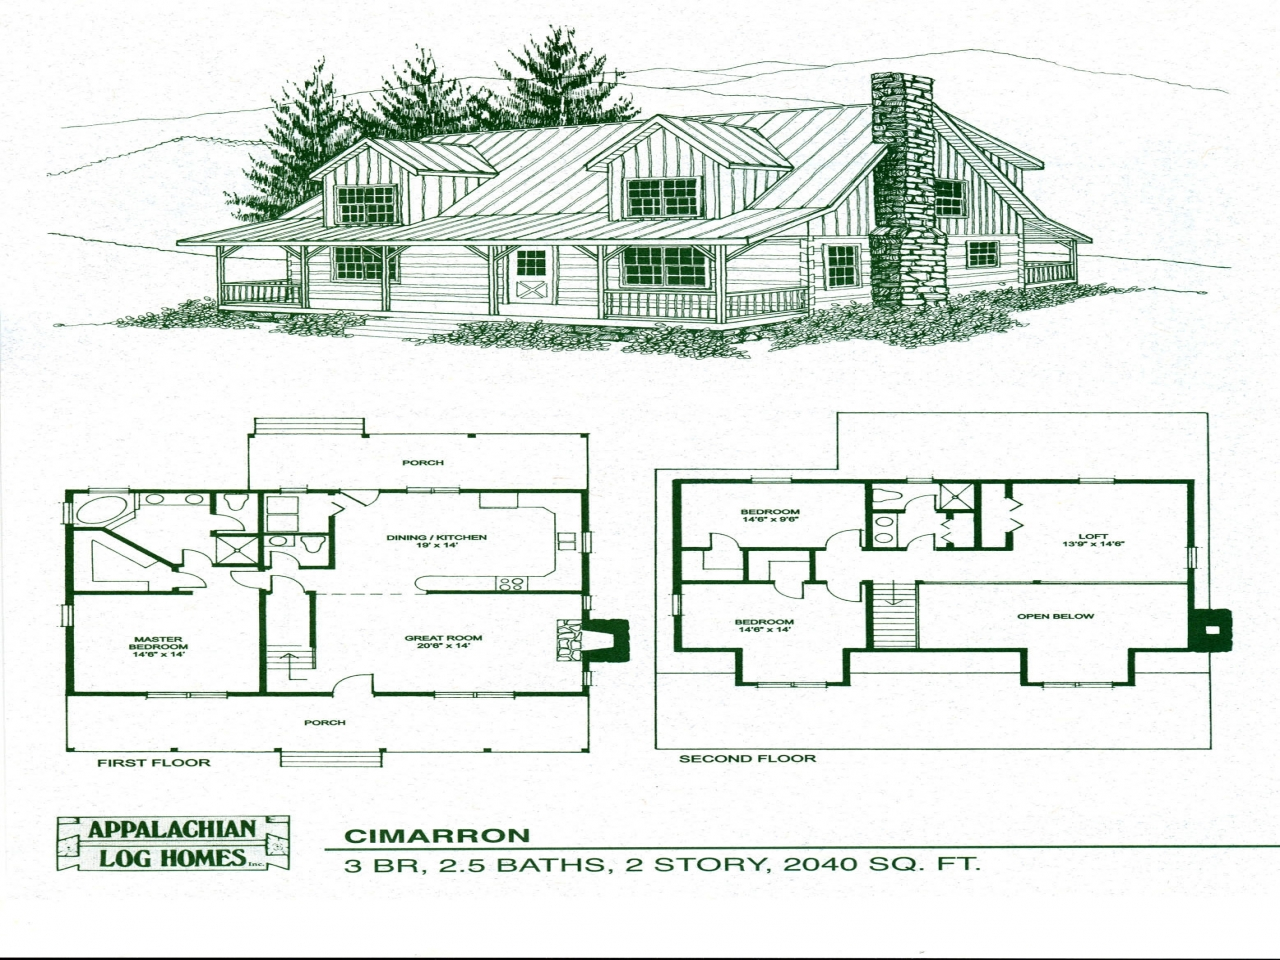 Log cabin kit homes floor plans 2 bedroom log cabin kits for 4 bedroom log cabin kits